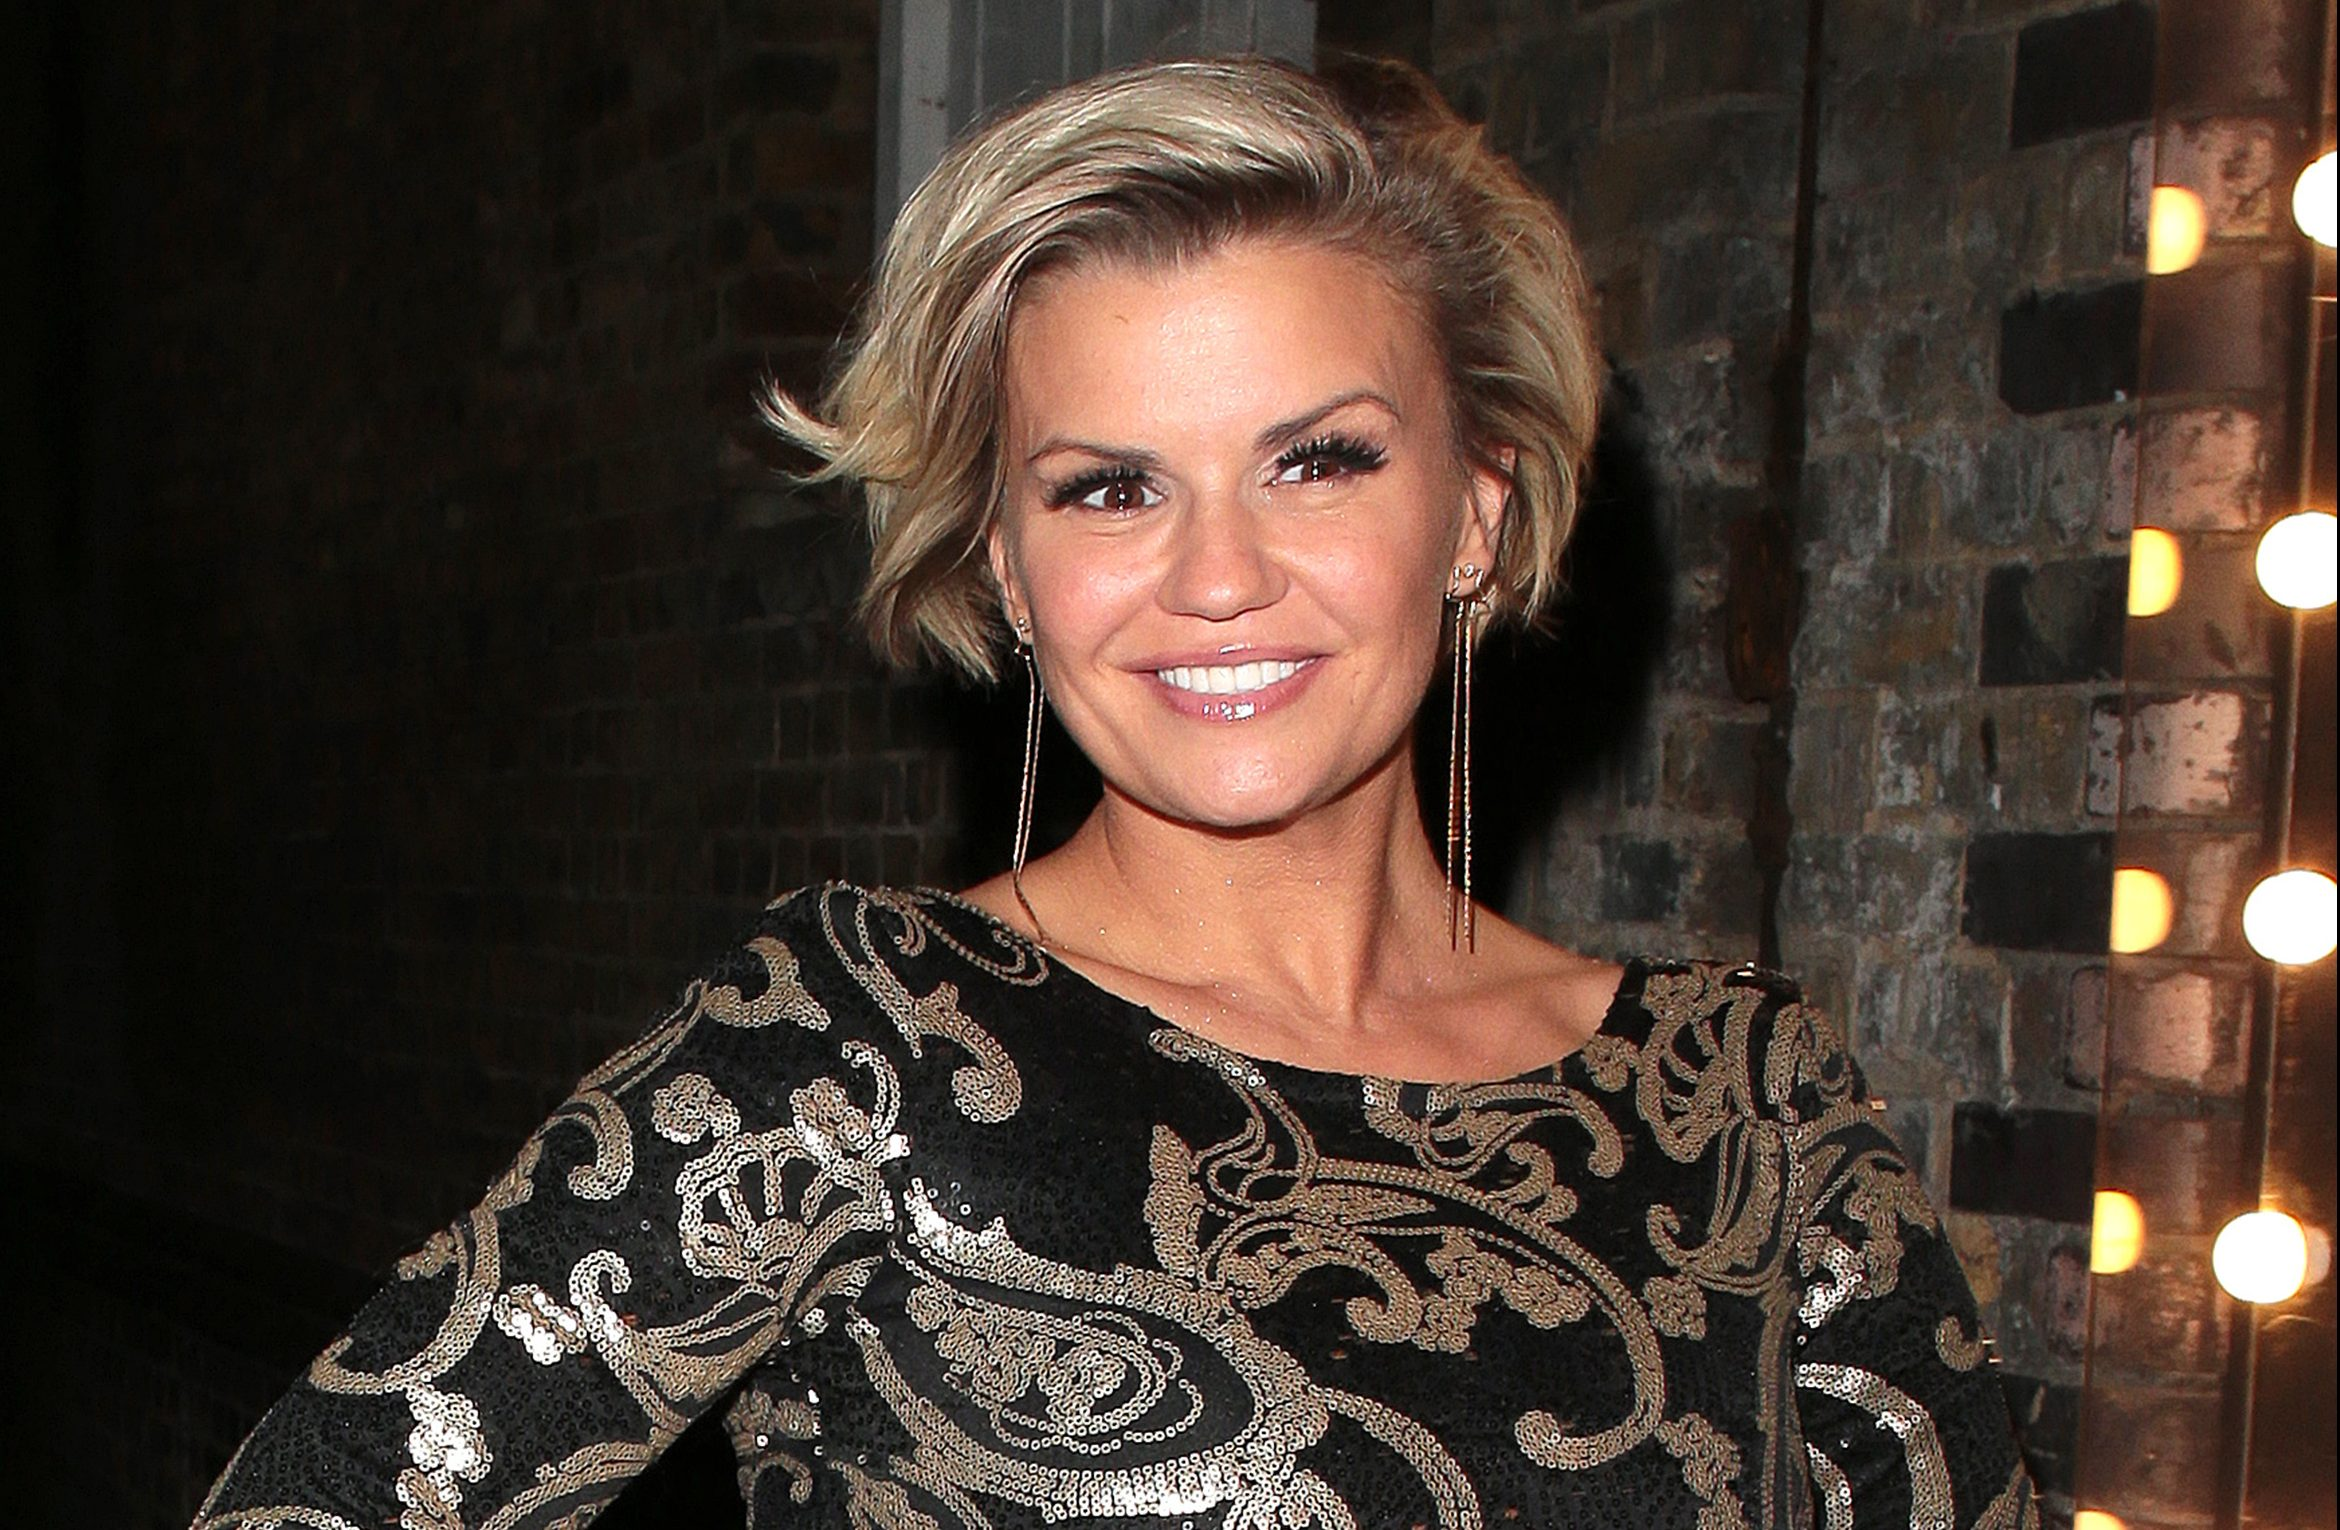 Kerry Katona was forced to sell pet parrot for tampons as a teenager